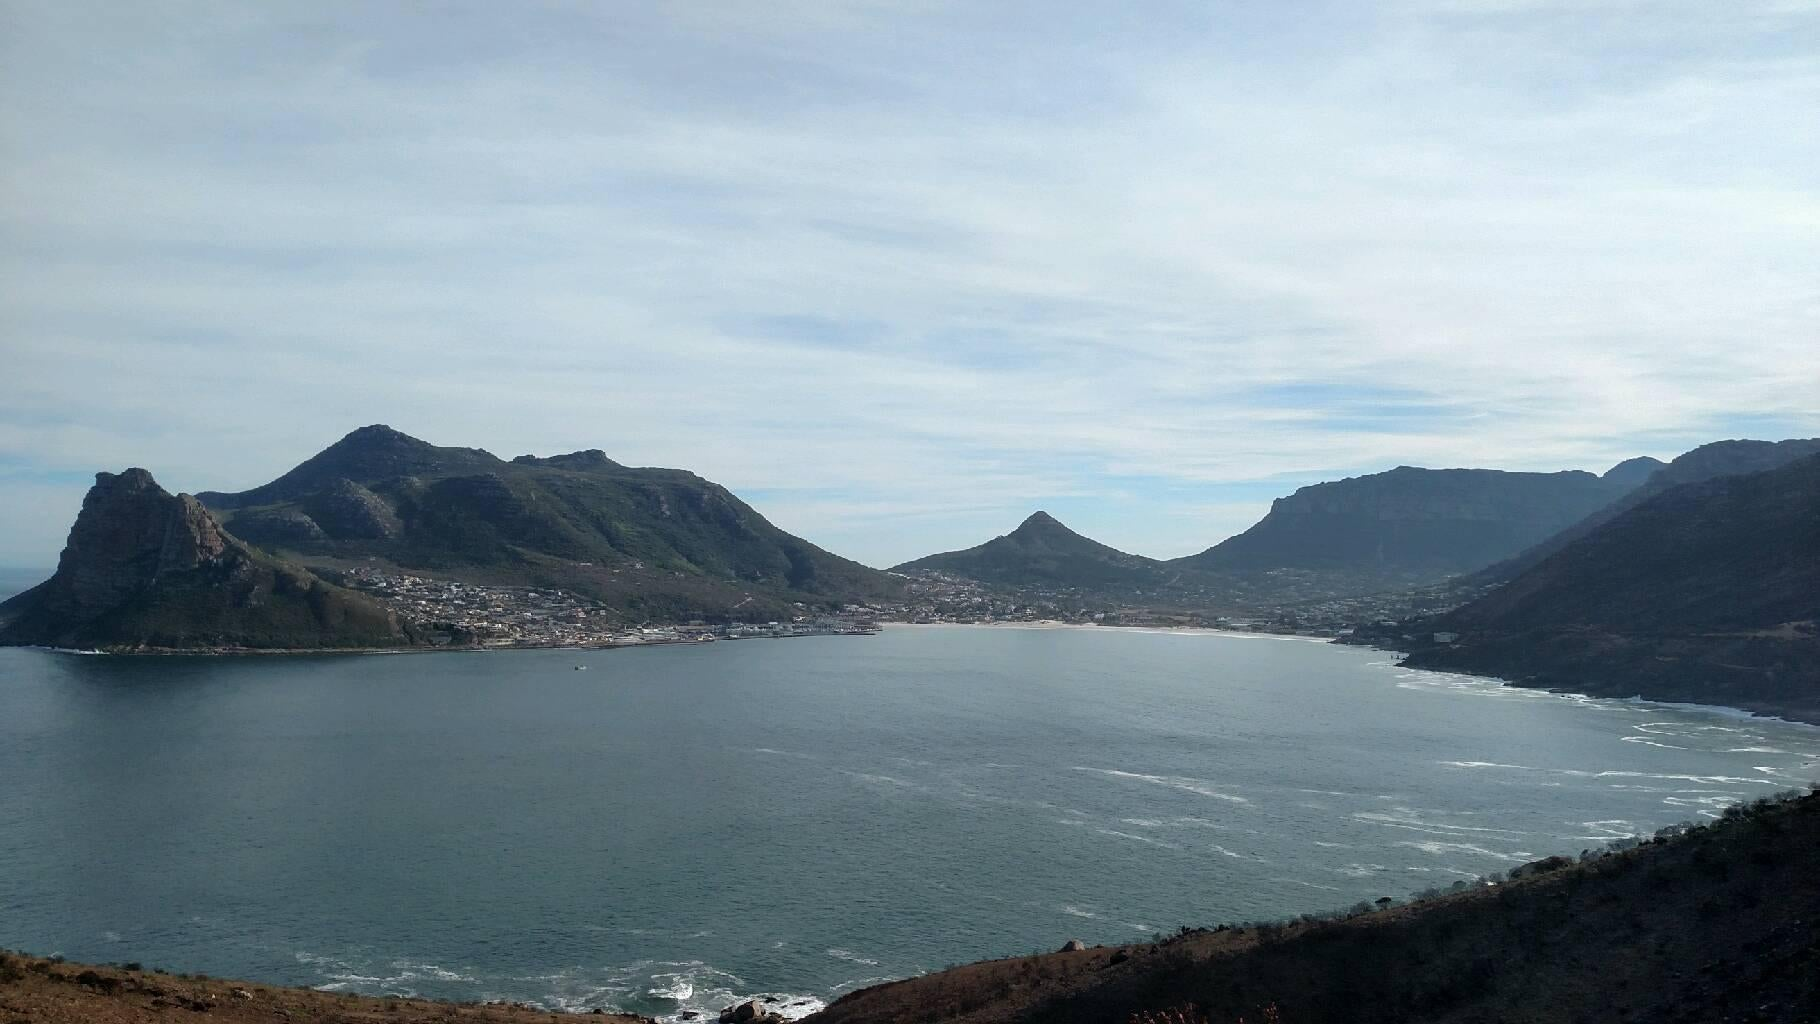 Embalse en Chapman's Peak Drive